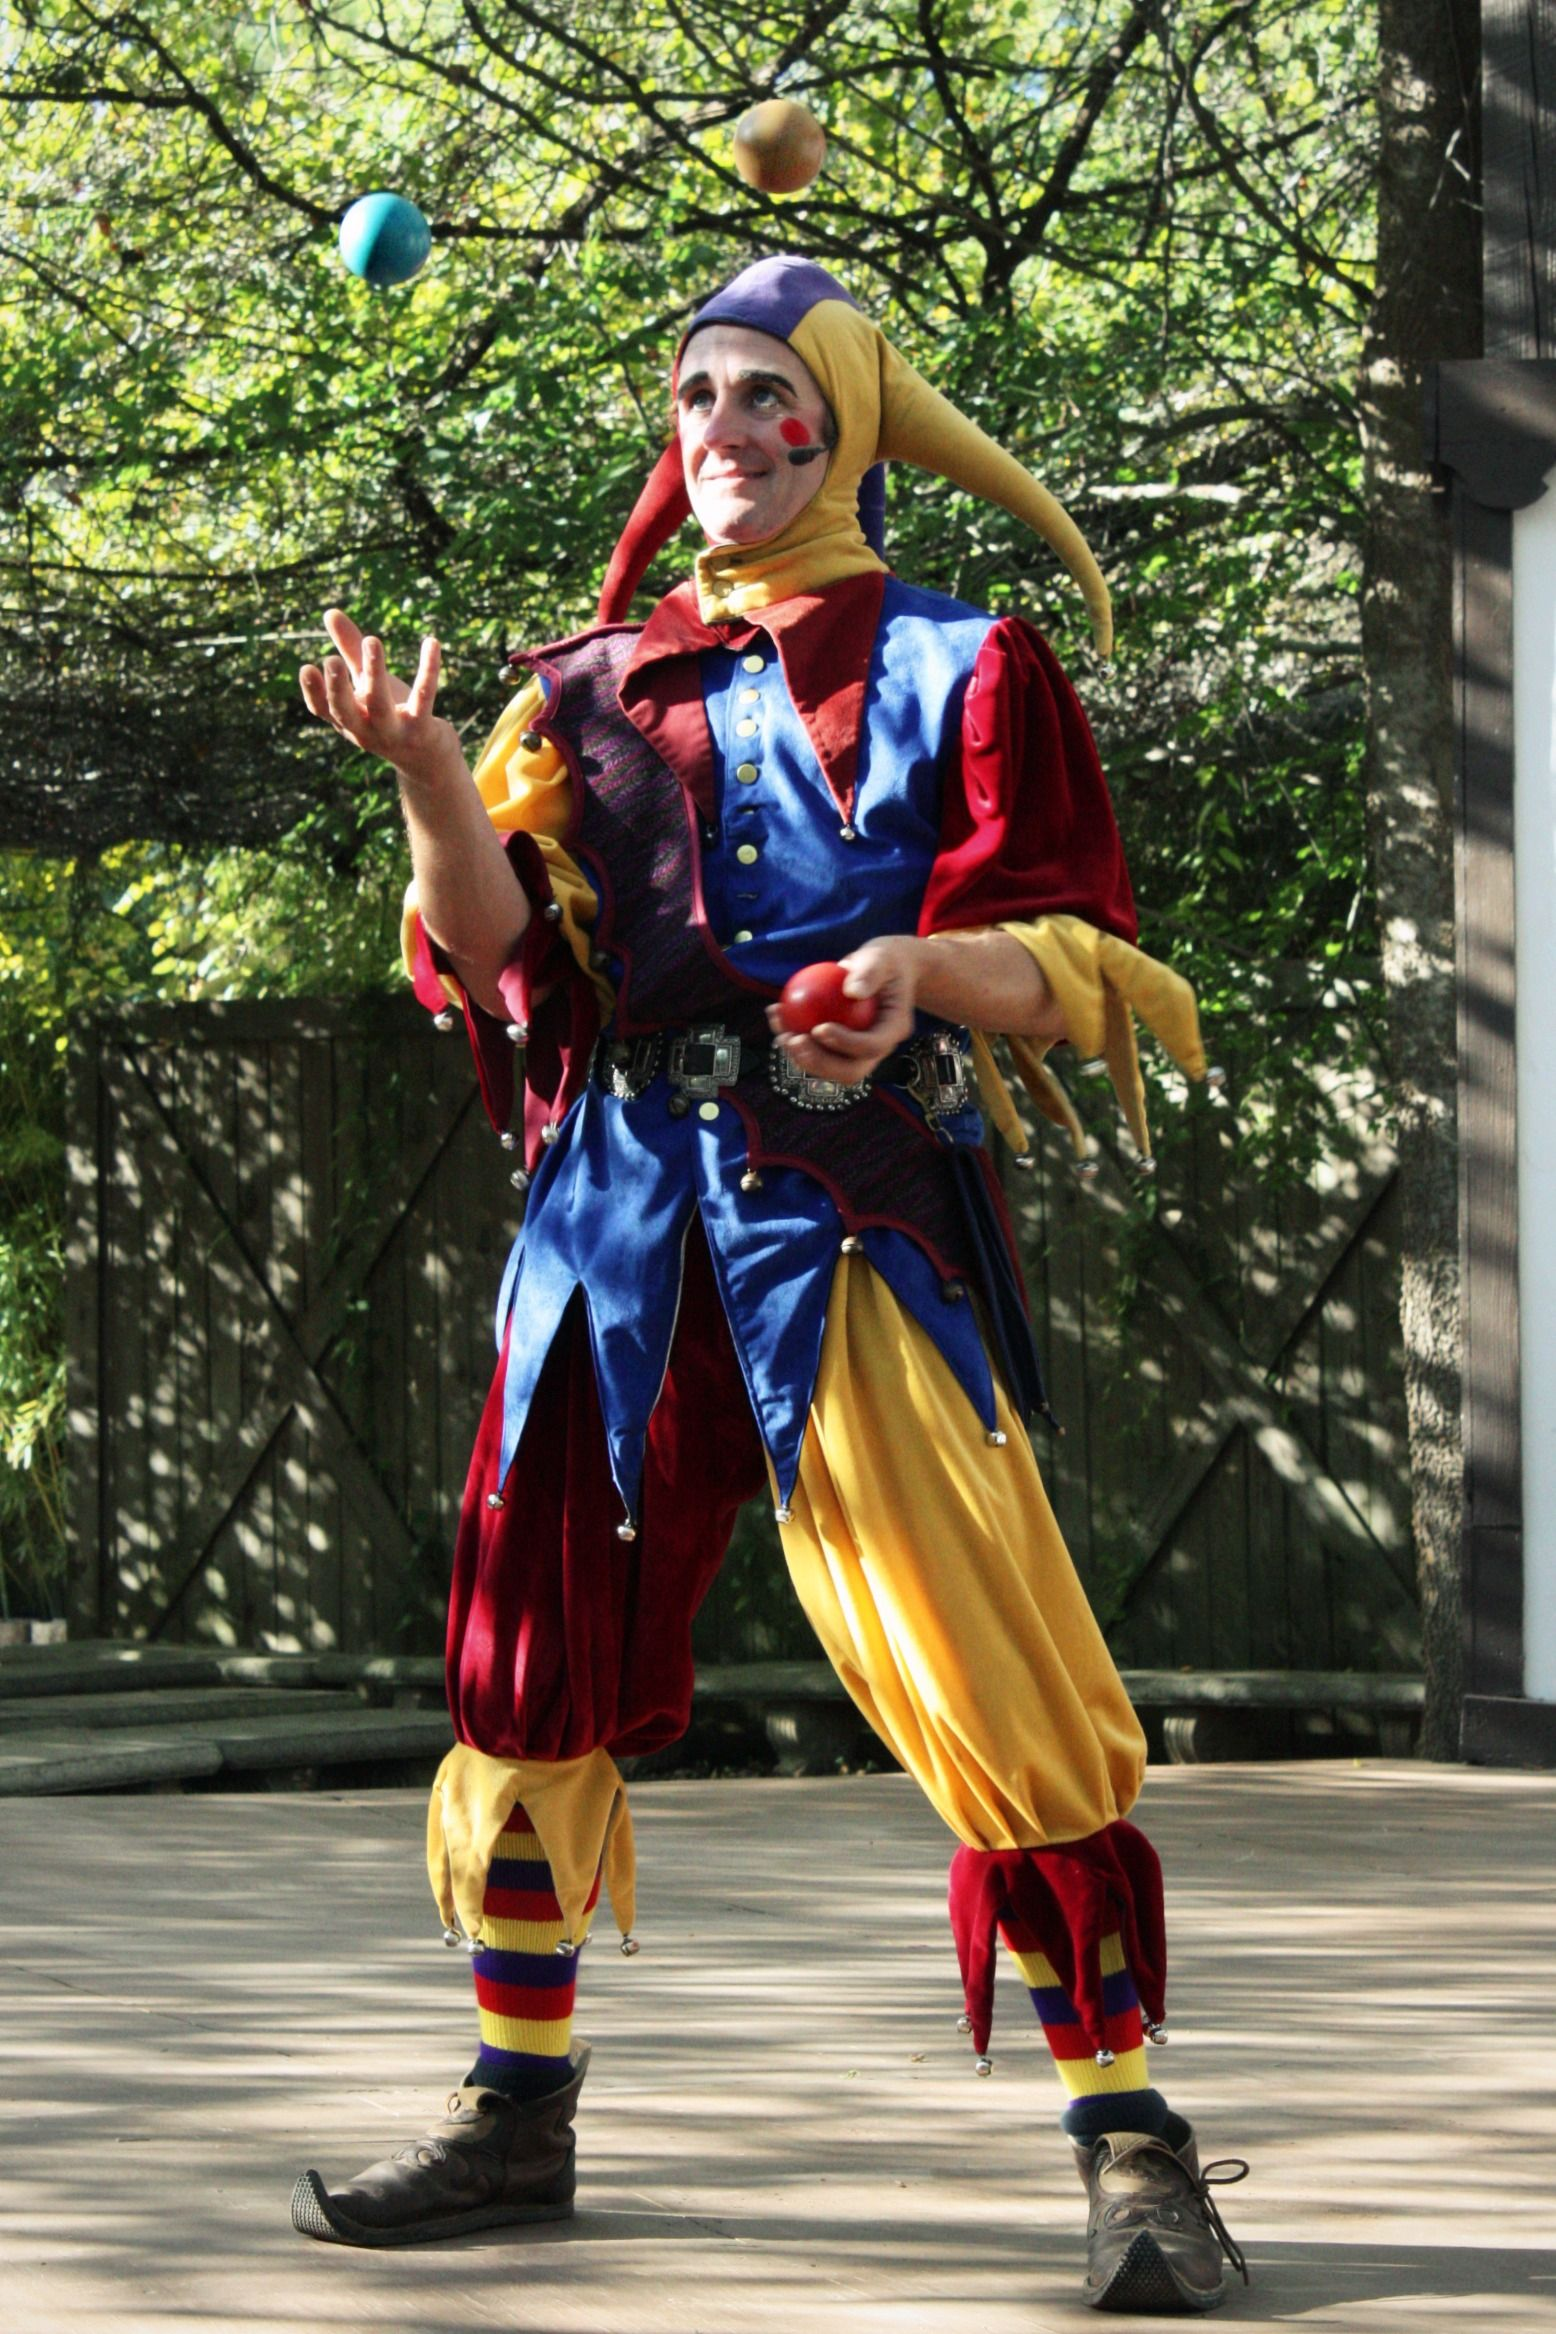 Image result for court jester juggling